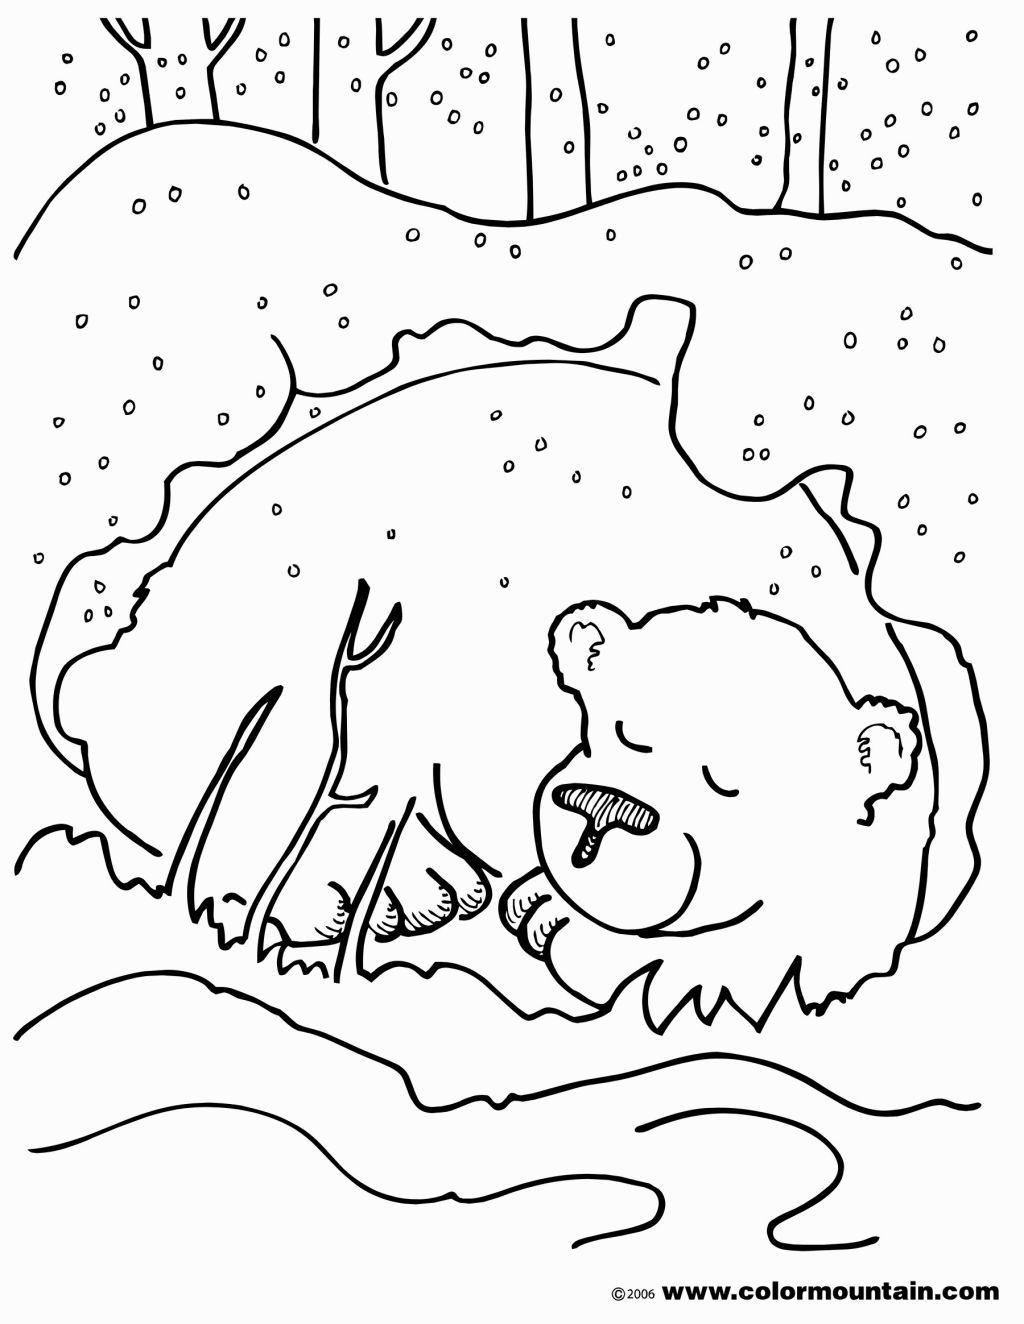 Brown Bear Coloring Pages | Coloring Pages | Pinterest | Brown bear ...